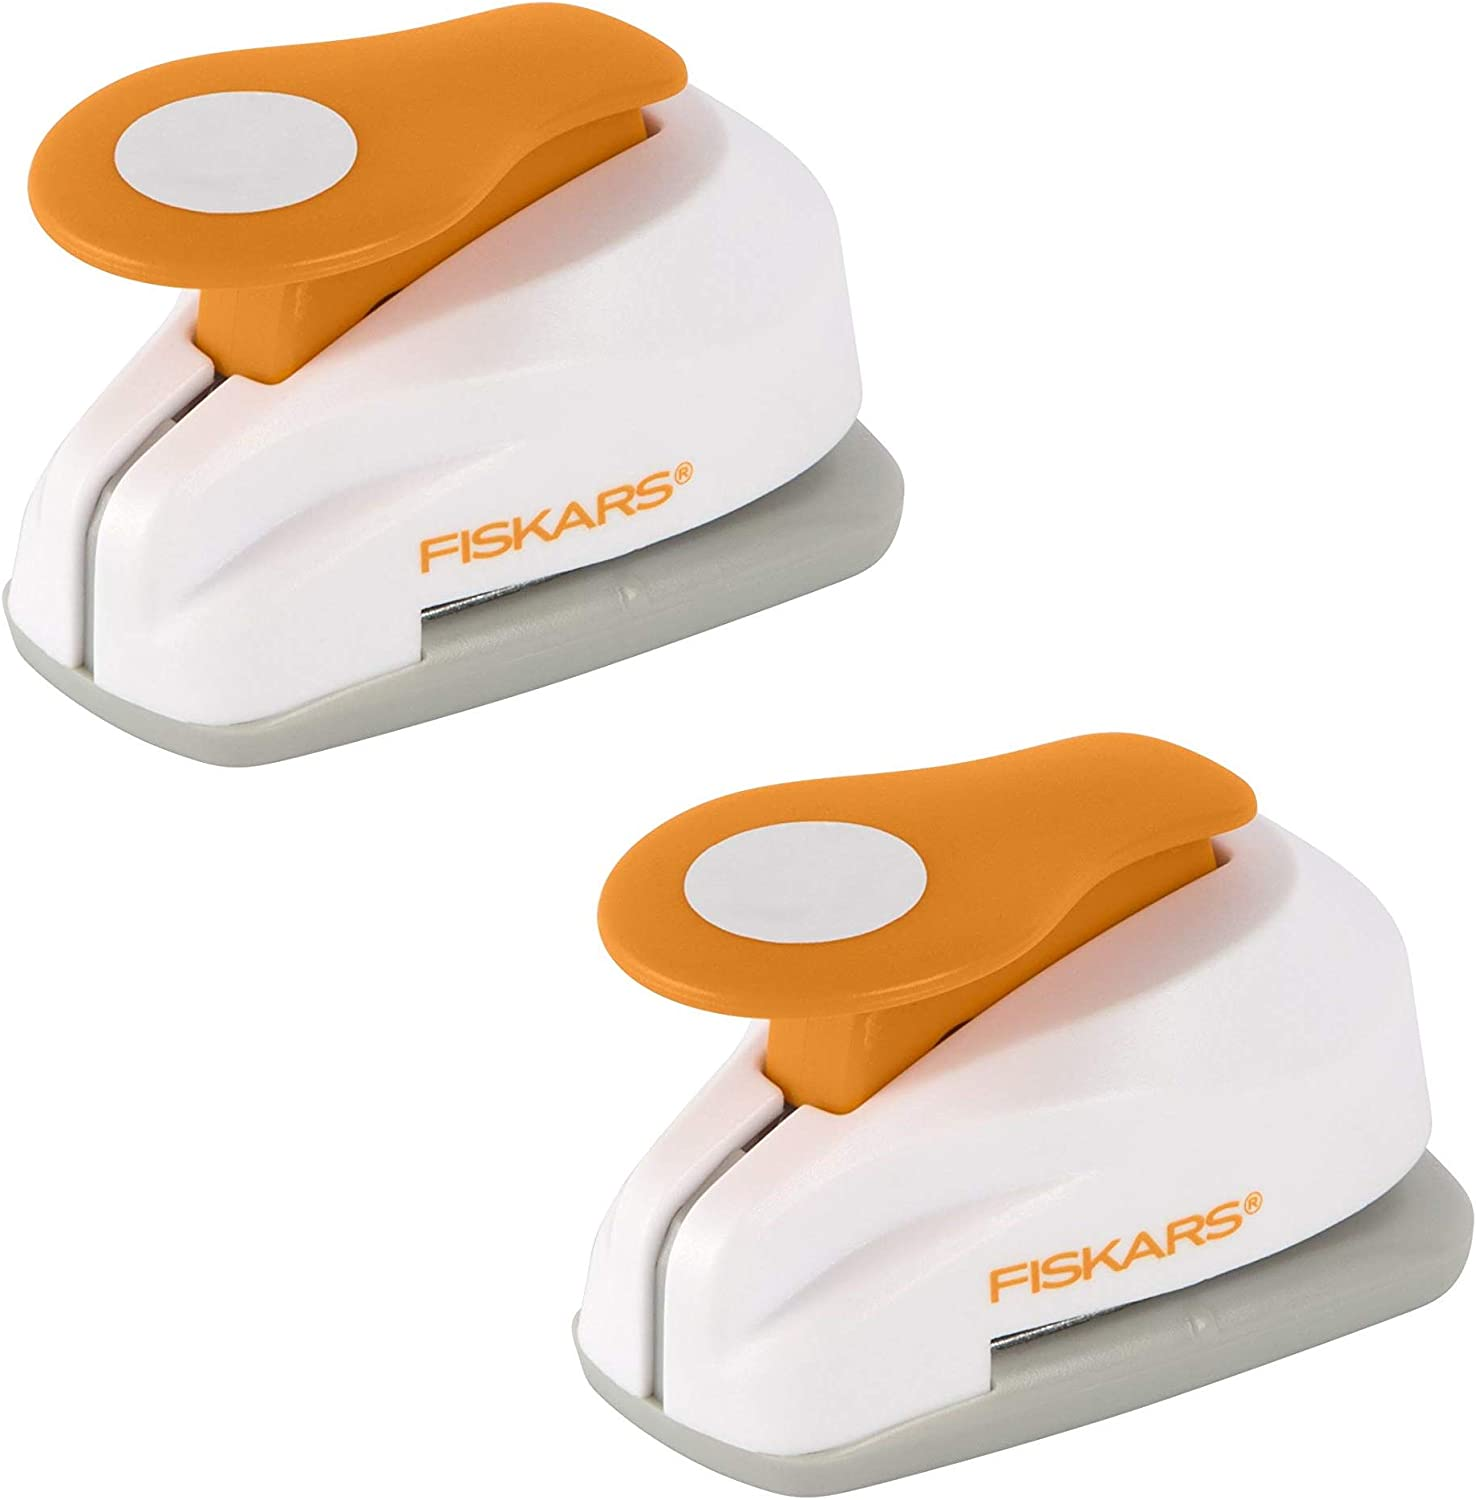 Fiskars Crafts Lever Punch Circle, Small (124830-1002), 2 Pack